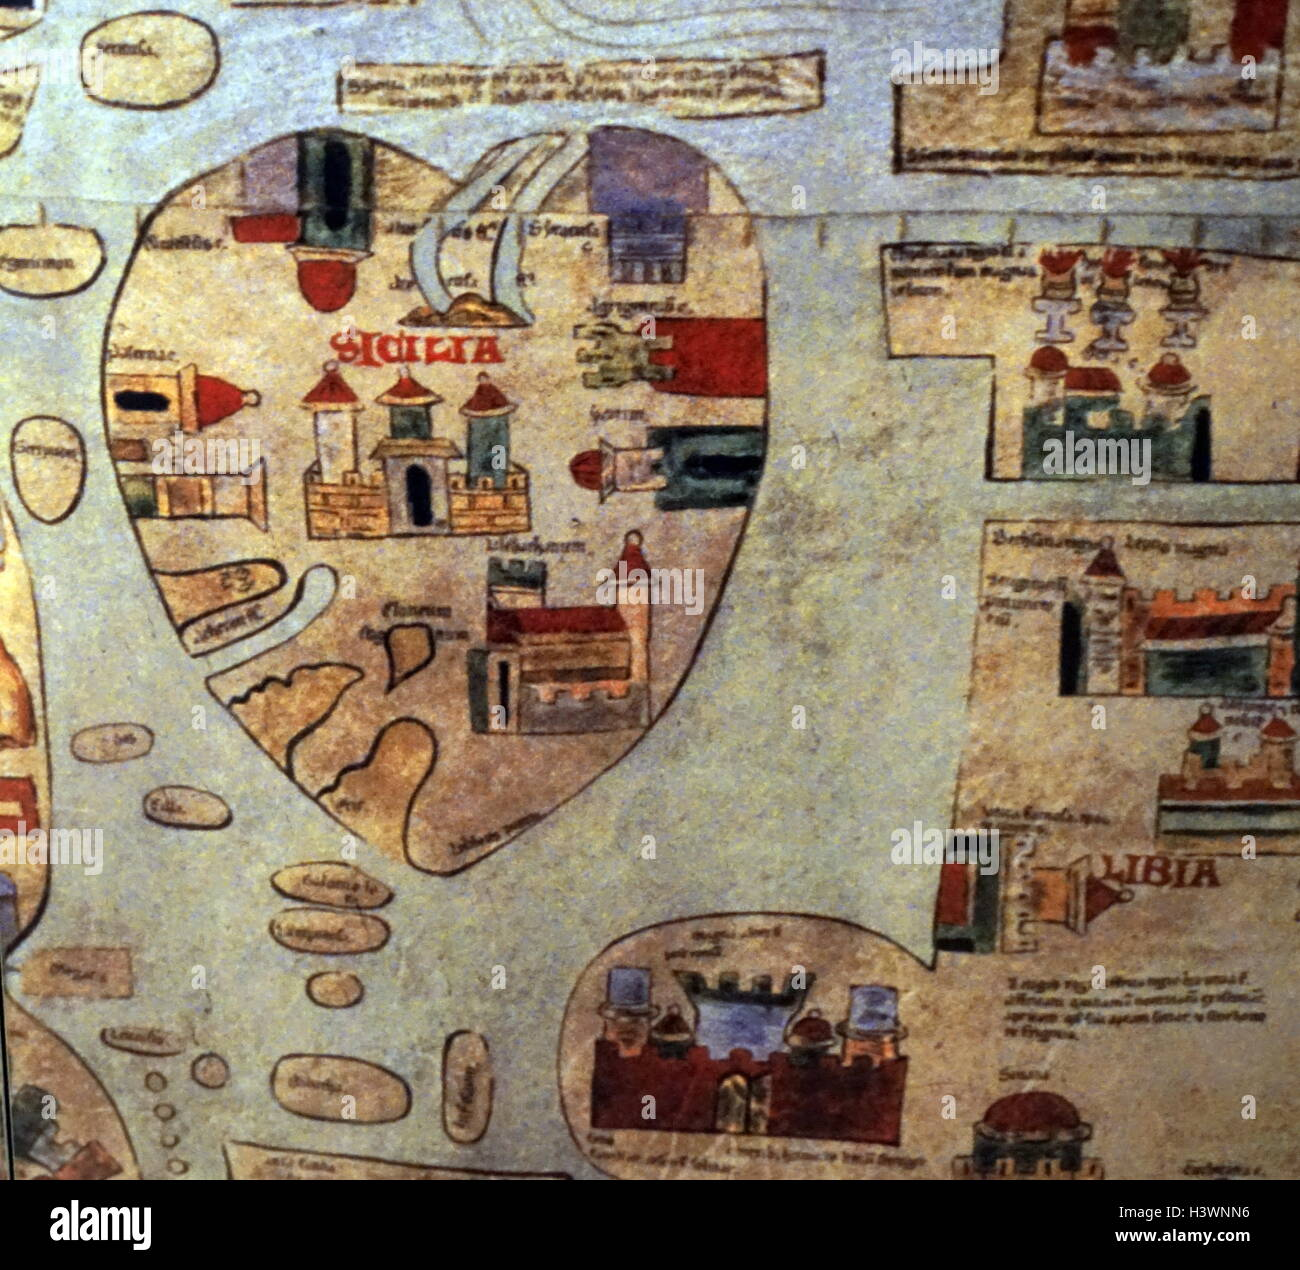 A Detailed Medieval Map Of The World As It Was Known Dated 14th